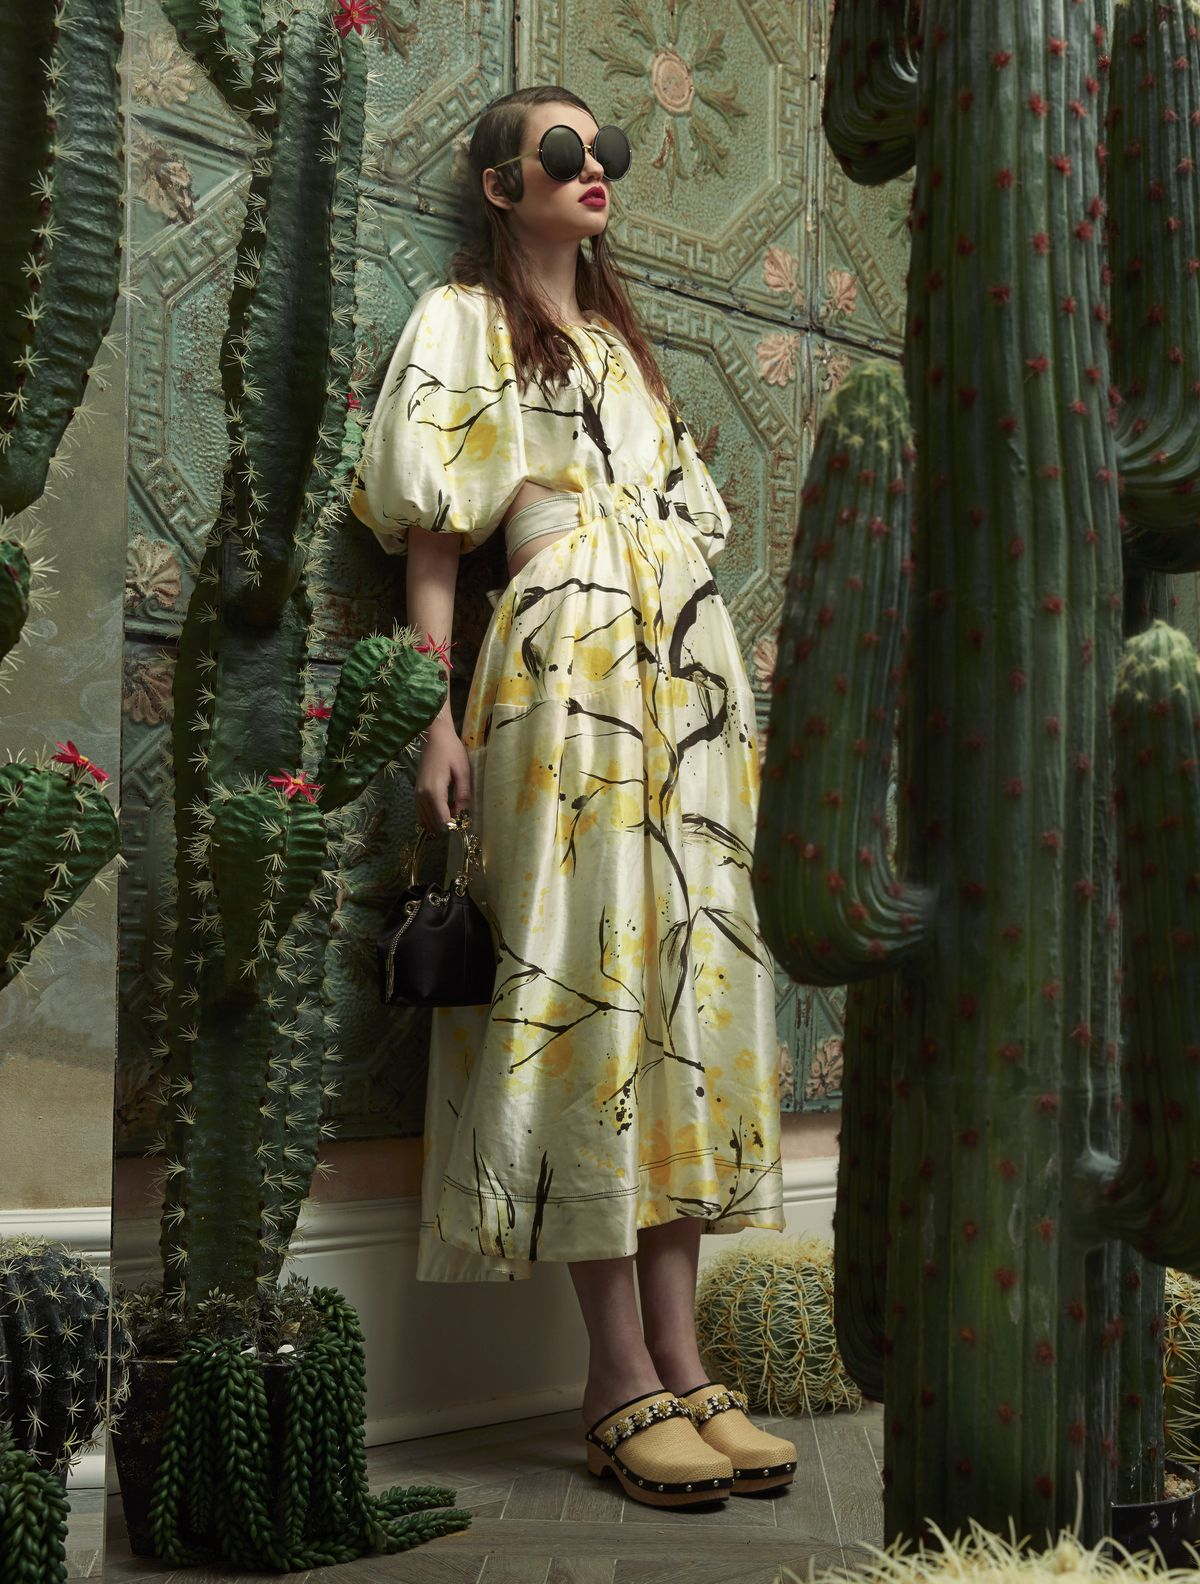 Cactus-inspired fashion editorial by Sandrine Dulermo and Michael Labica